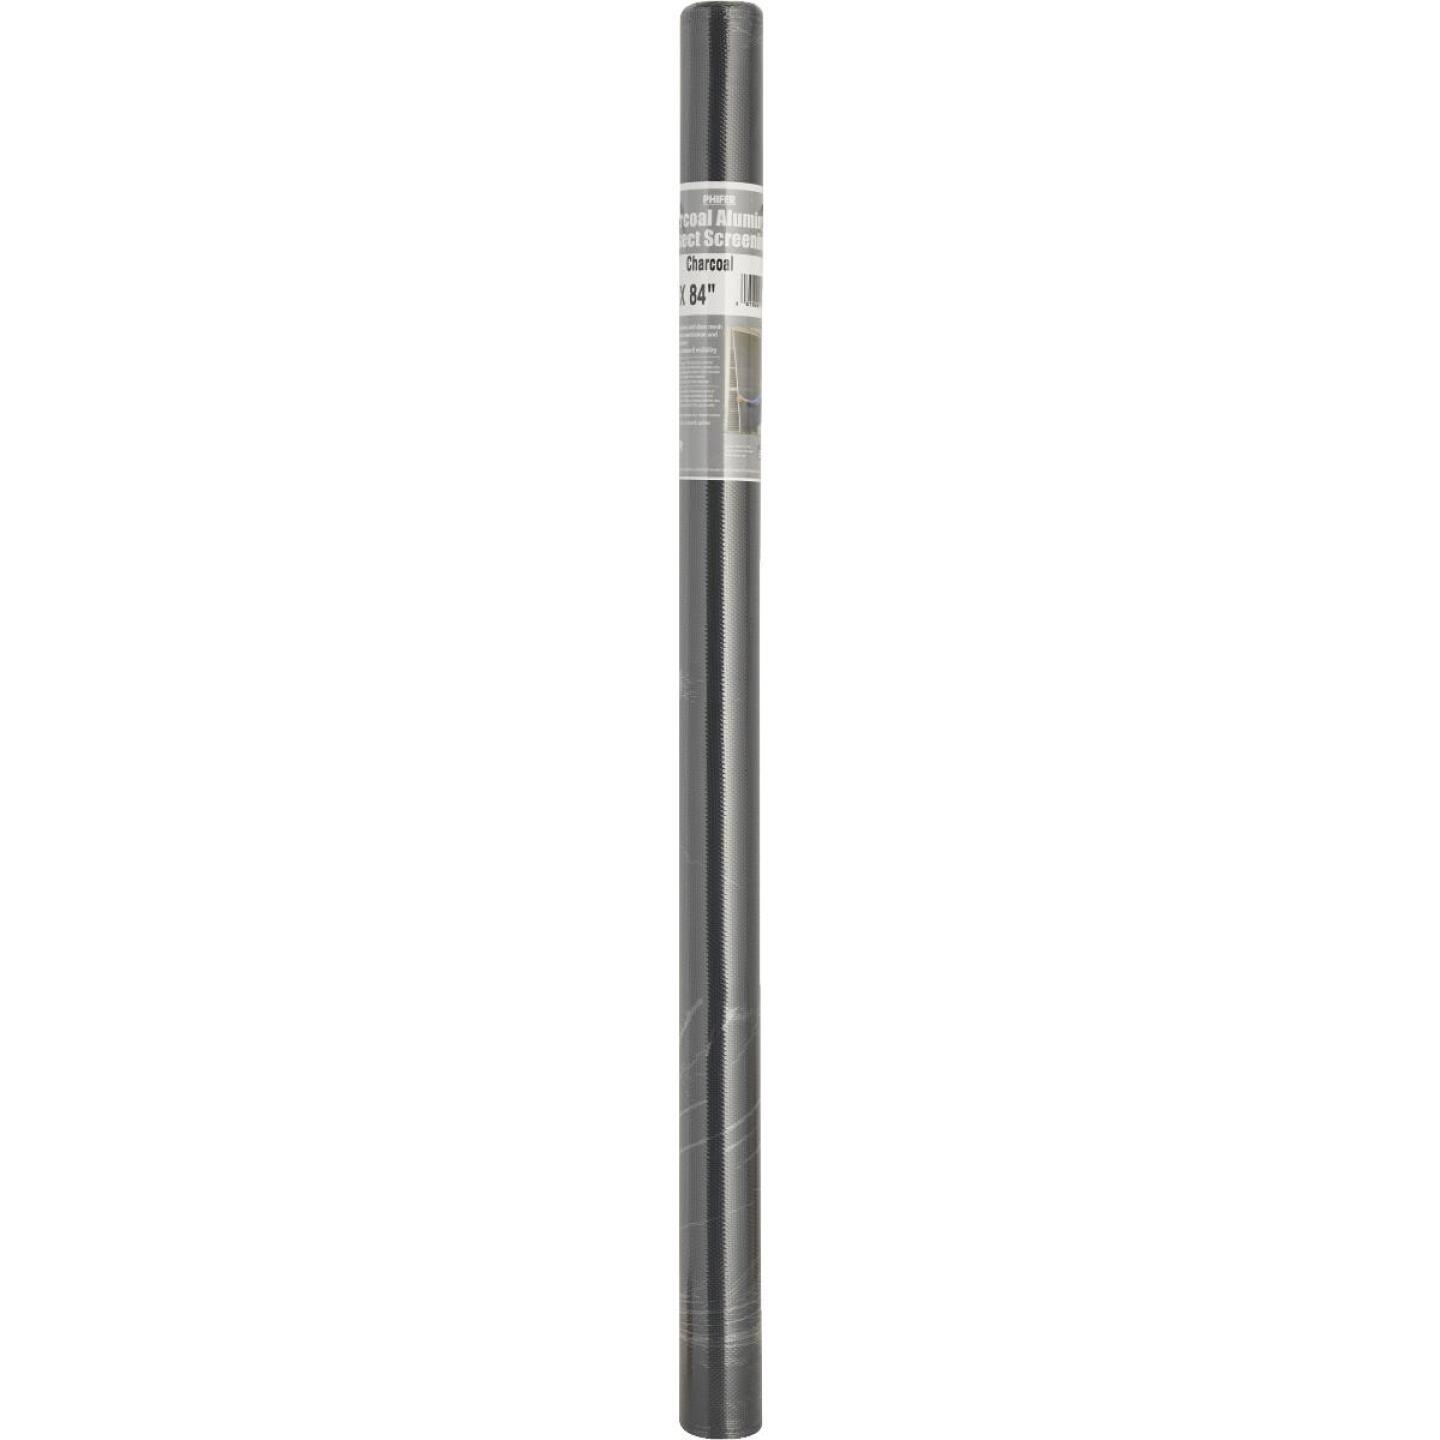 Phifer 36 In. x 84 In. Charcoal Aluminum Screen Ready Rolls Image 2